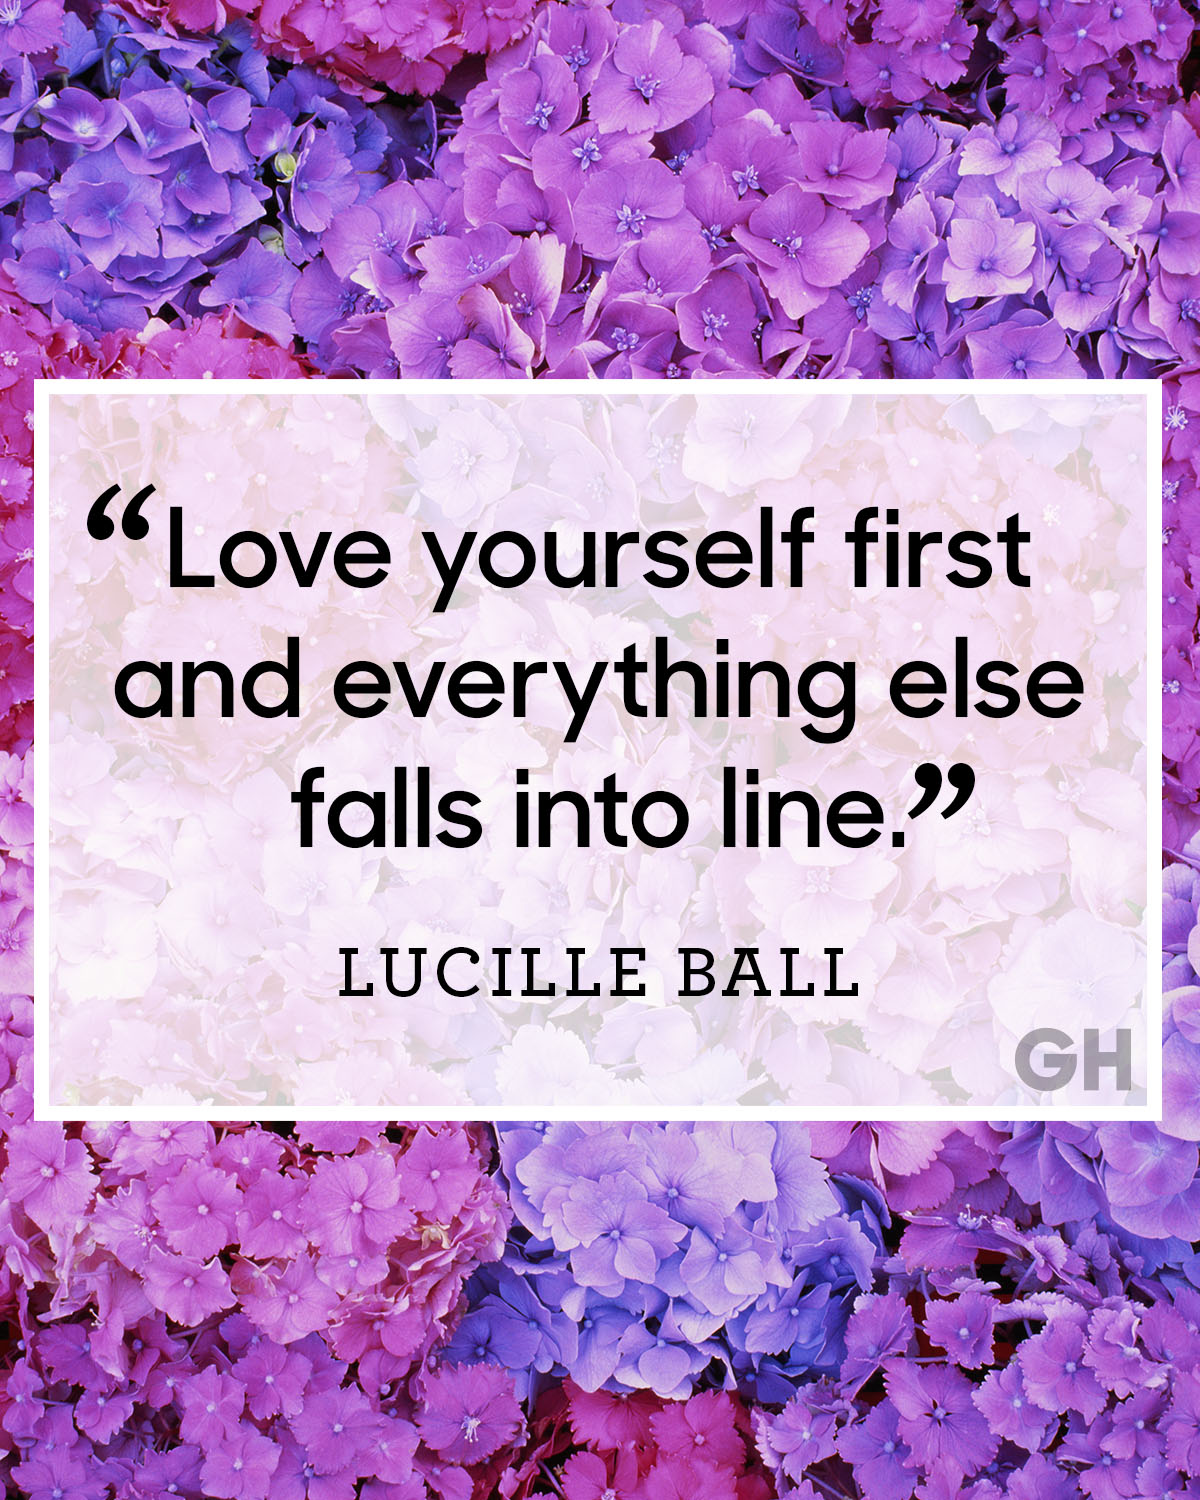 gh quotes 0003 lucille ball copy